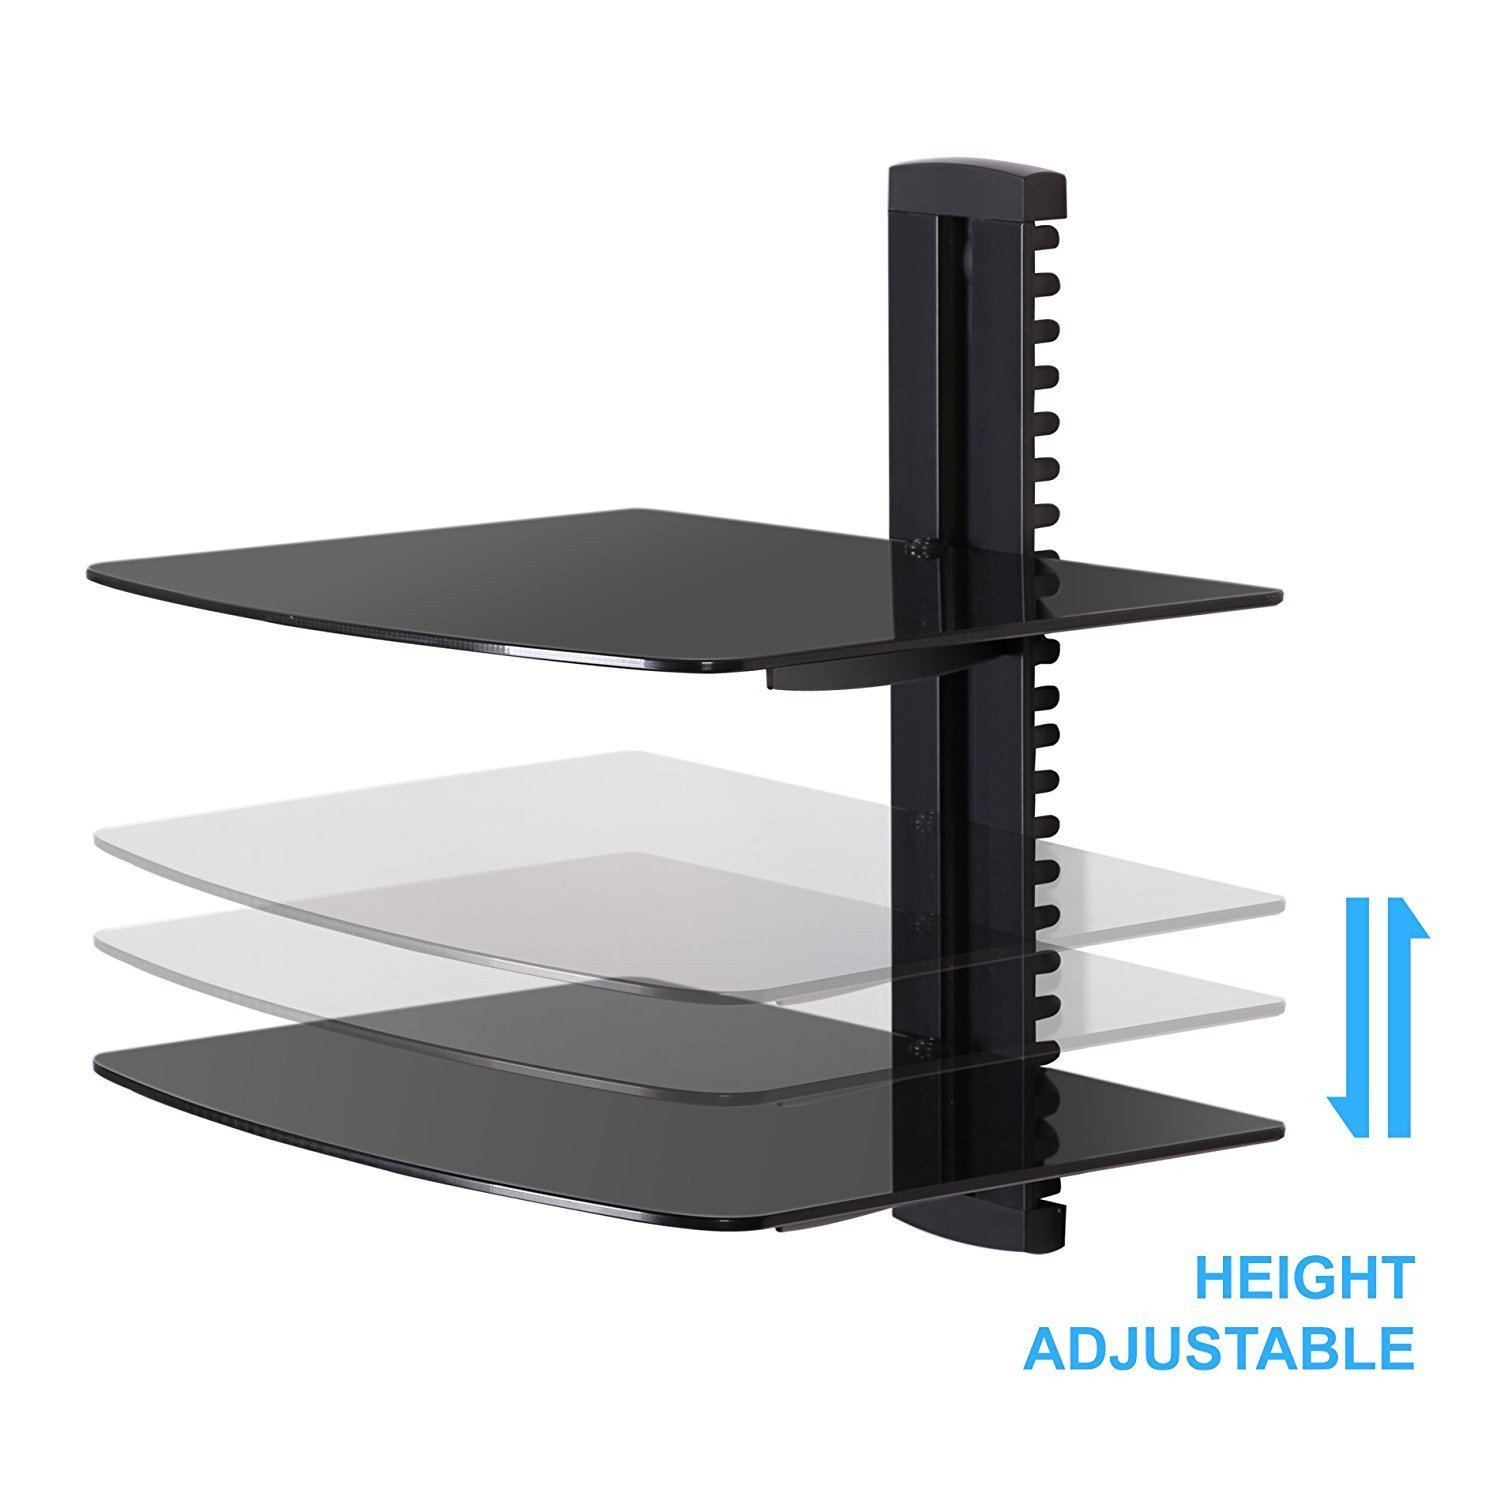 black tier adjustable wall mount glass floating dvd component bracket stand shelf for fitueyes tempered tiers shelves players blu ray receiver shoe storage large shoes white gloss